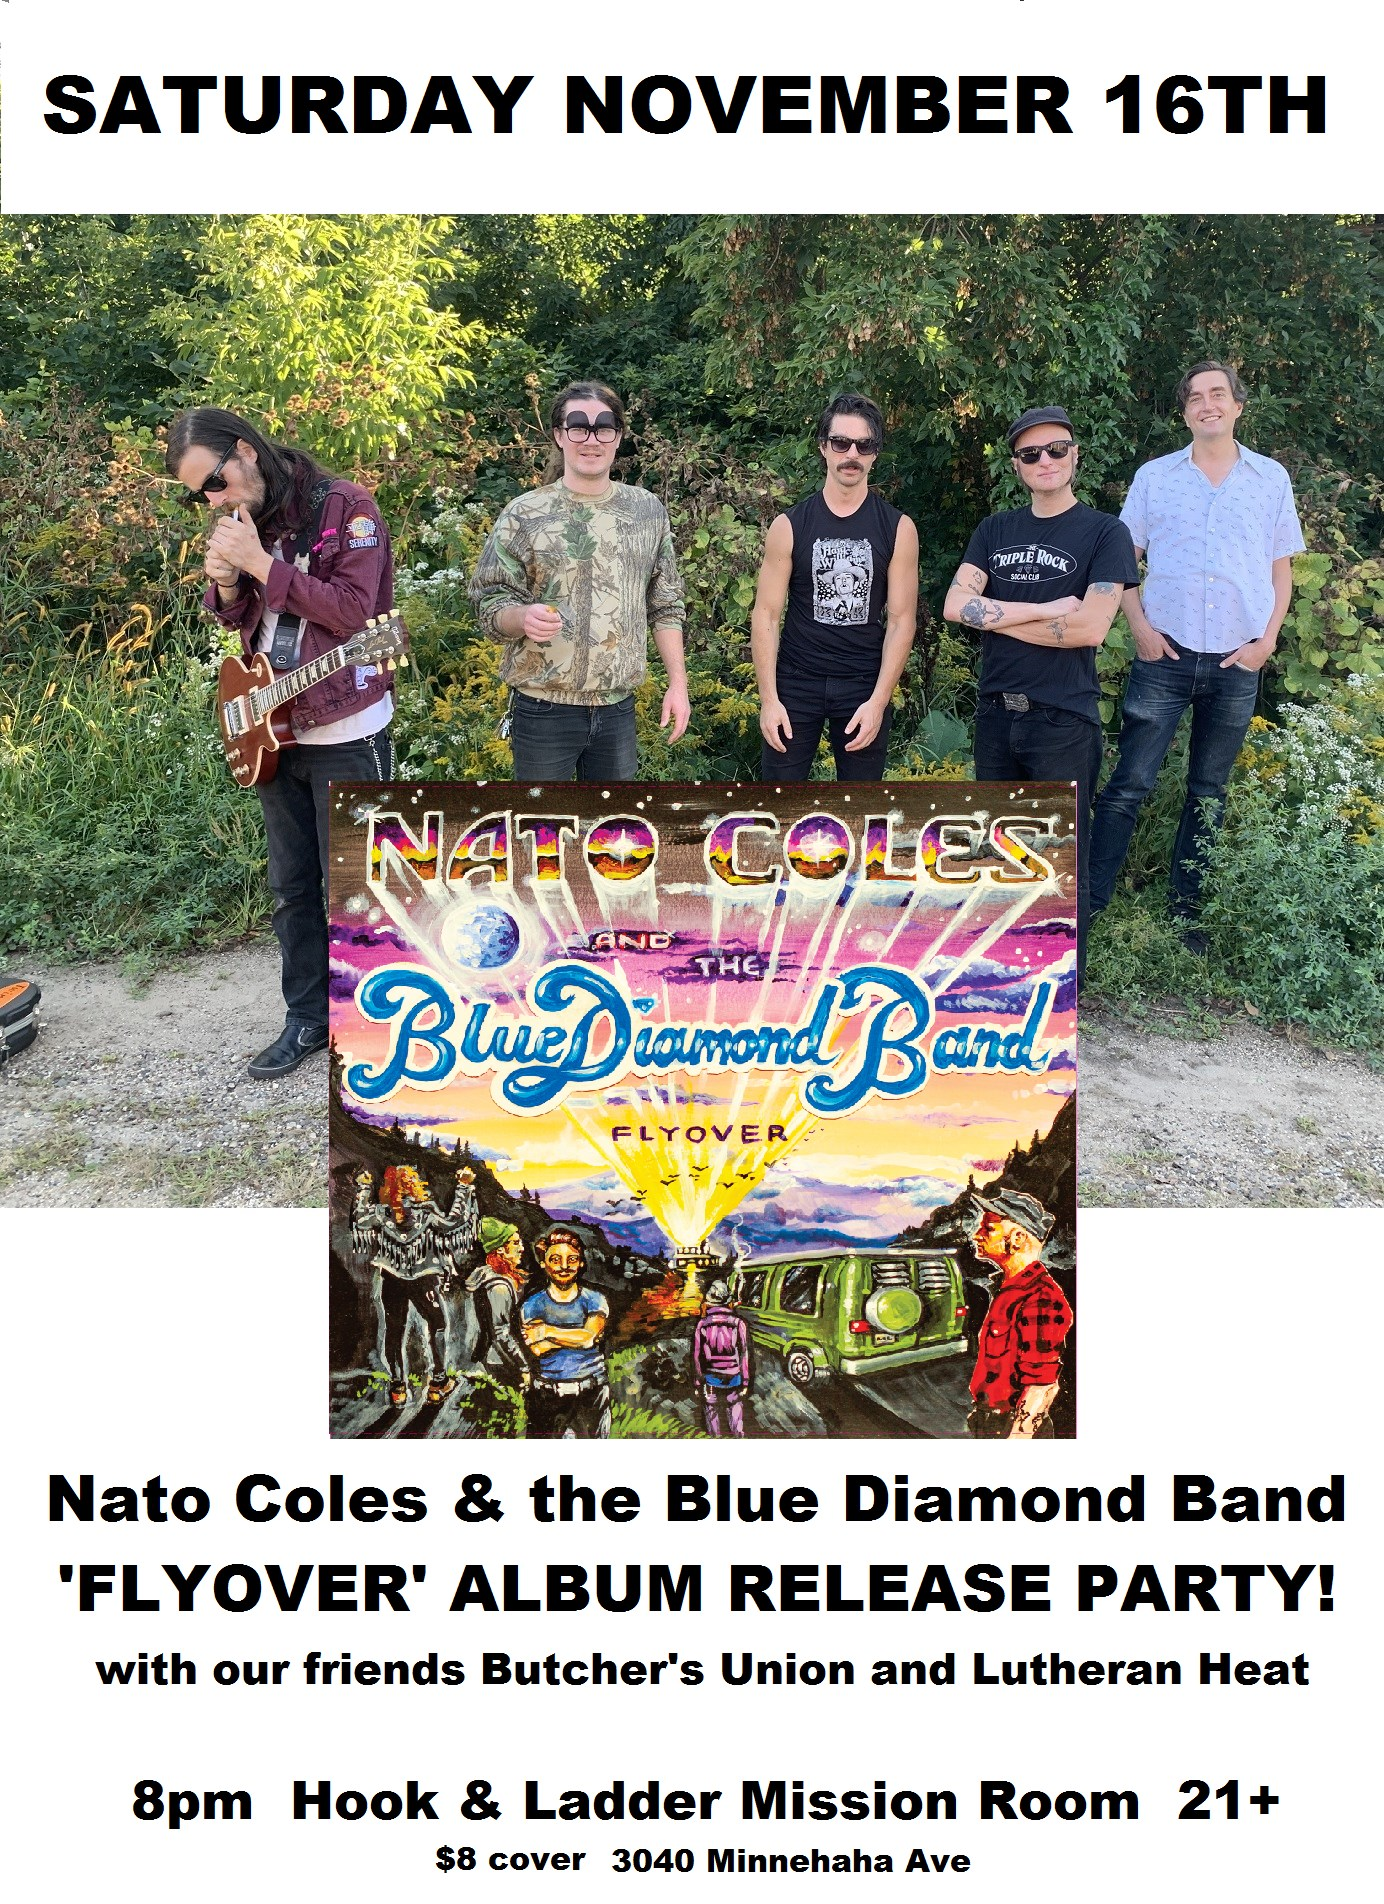 Nato Coles & the Blue Diamond Band with Butcher's Union and Luthern Heat on Saturday, November 16